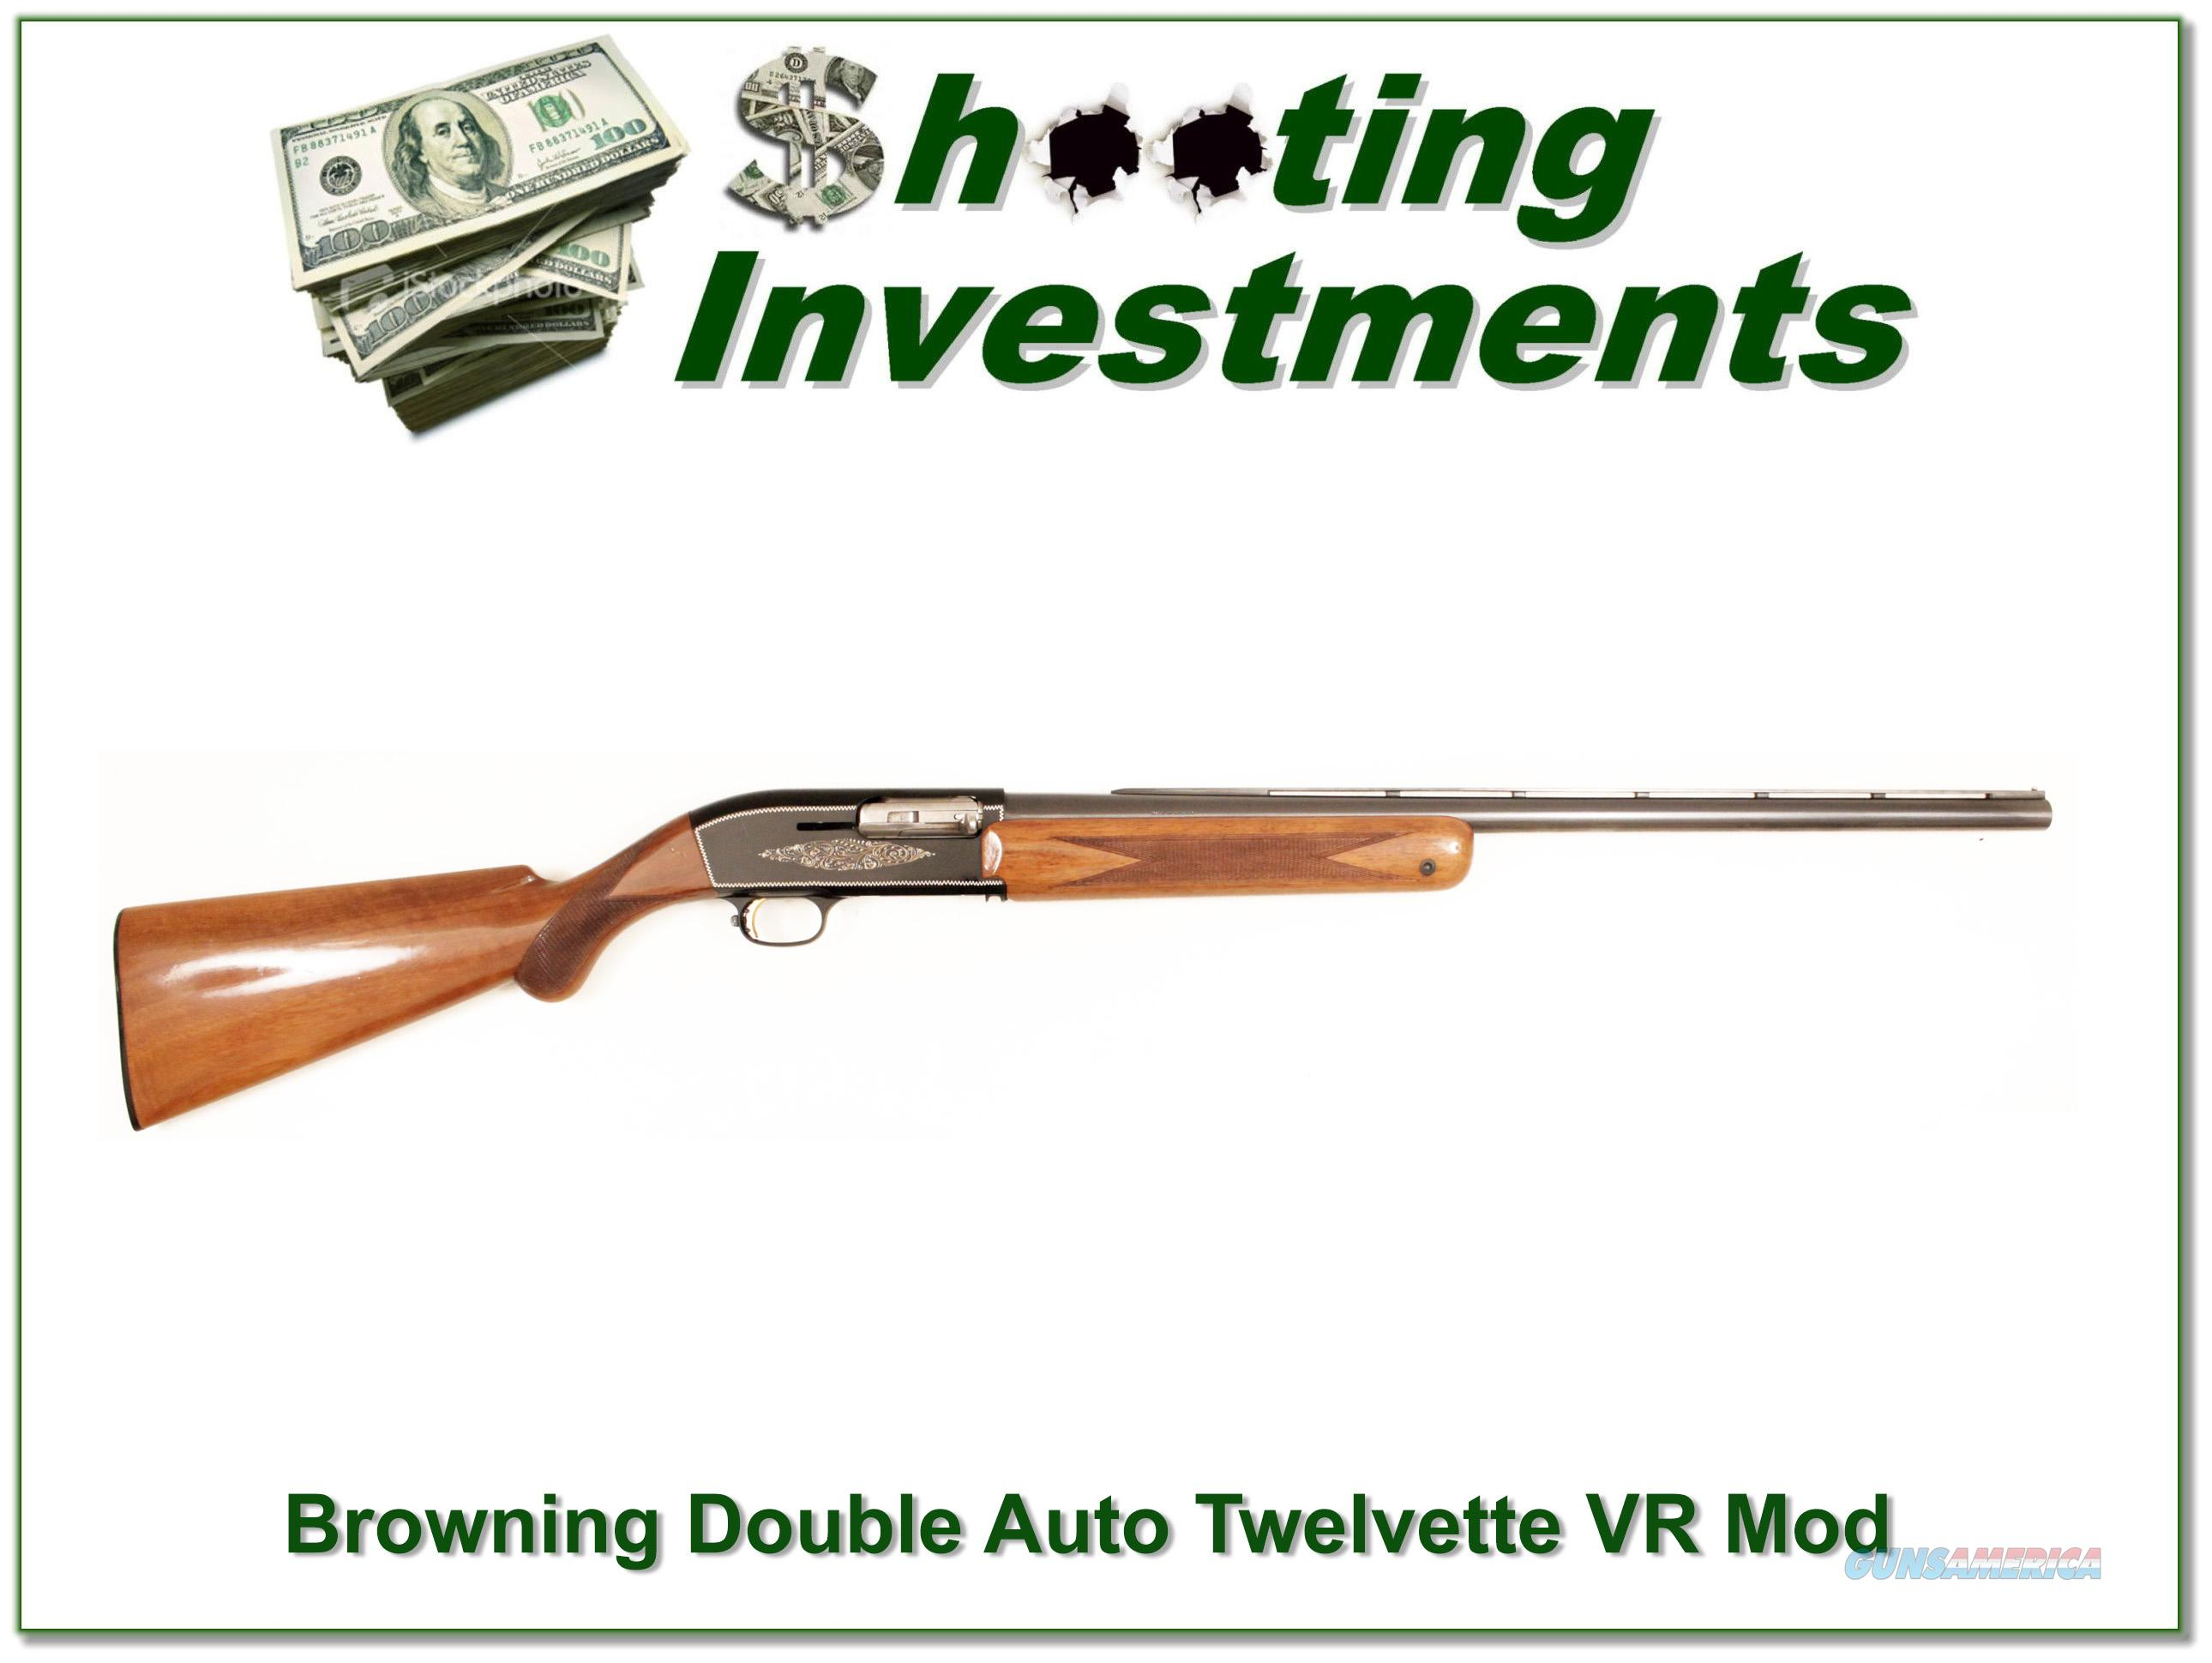 Browning Twelvette '61 Belgium Double Auto Exc Cond  Guns > Shotguns > Browning Shotguns > Autoloaders > Hunting